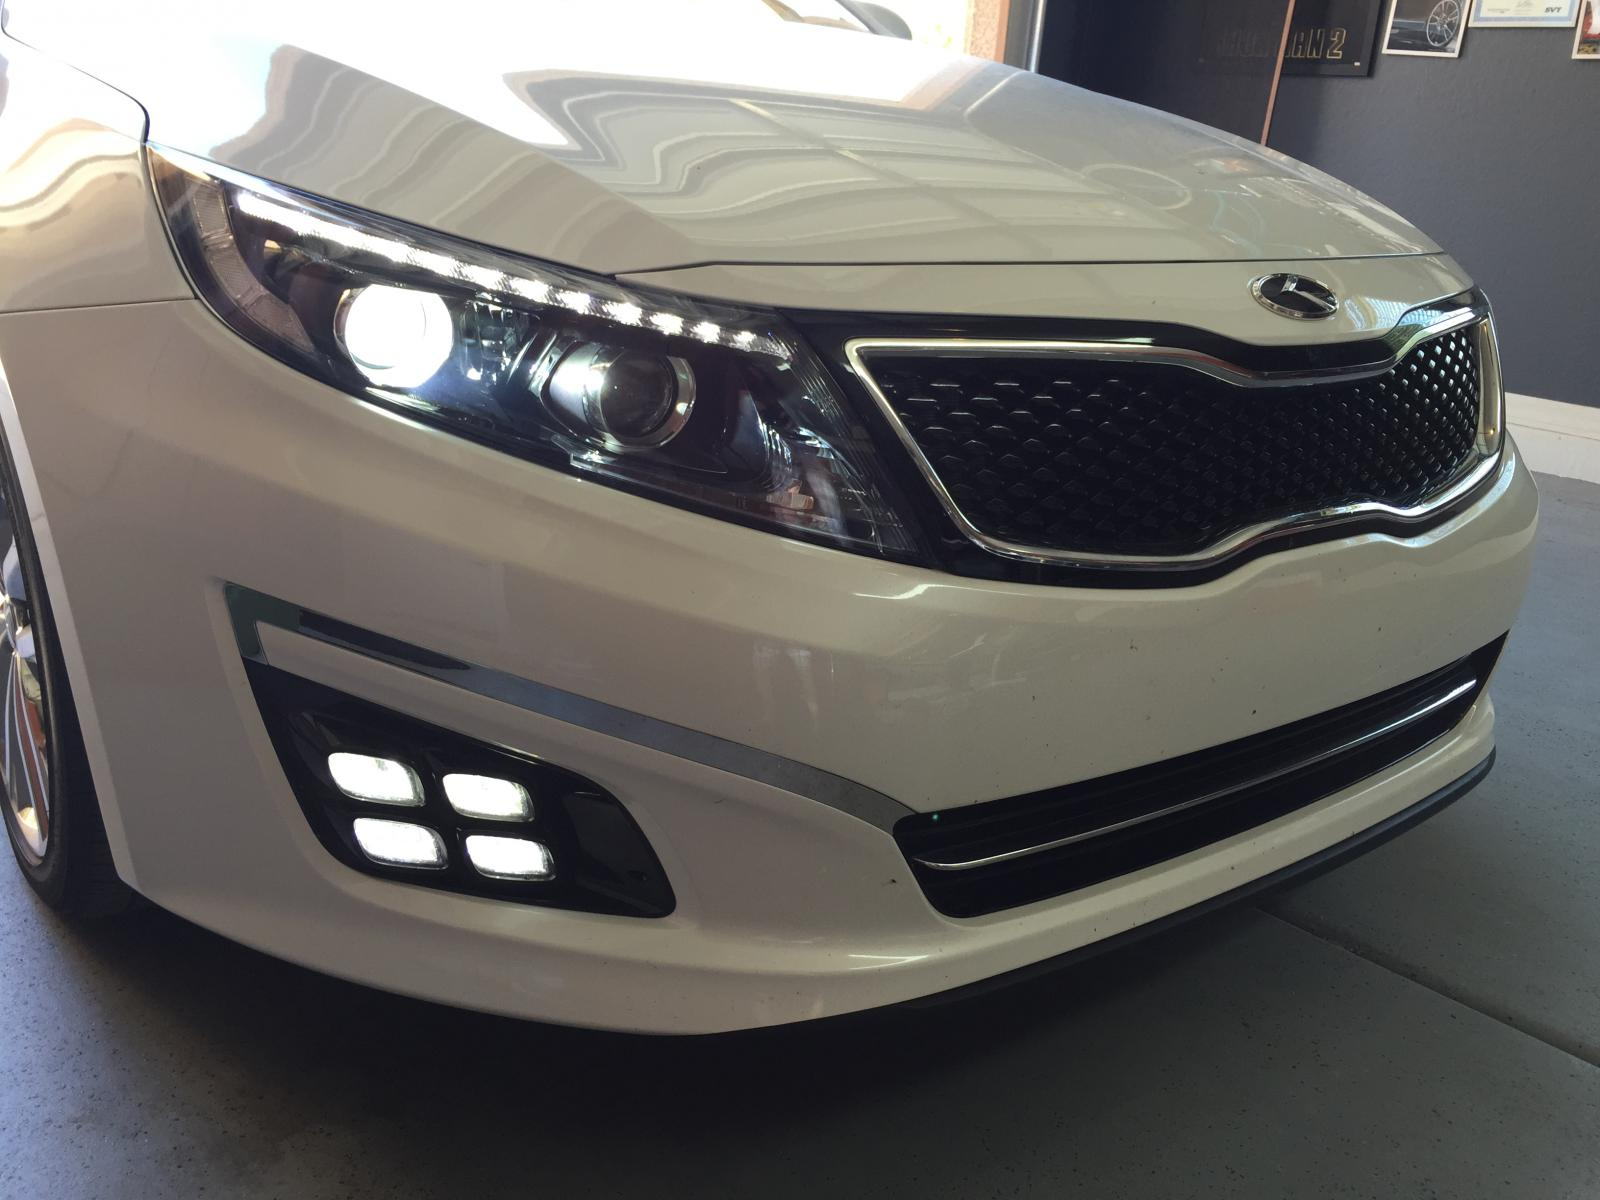 Kia Forte Projector Headlights All About Headlight Koup Ccfl Led How To Turn On Drls Dual